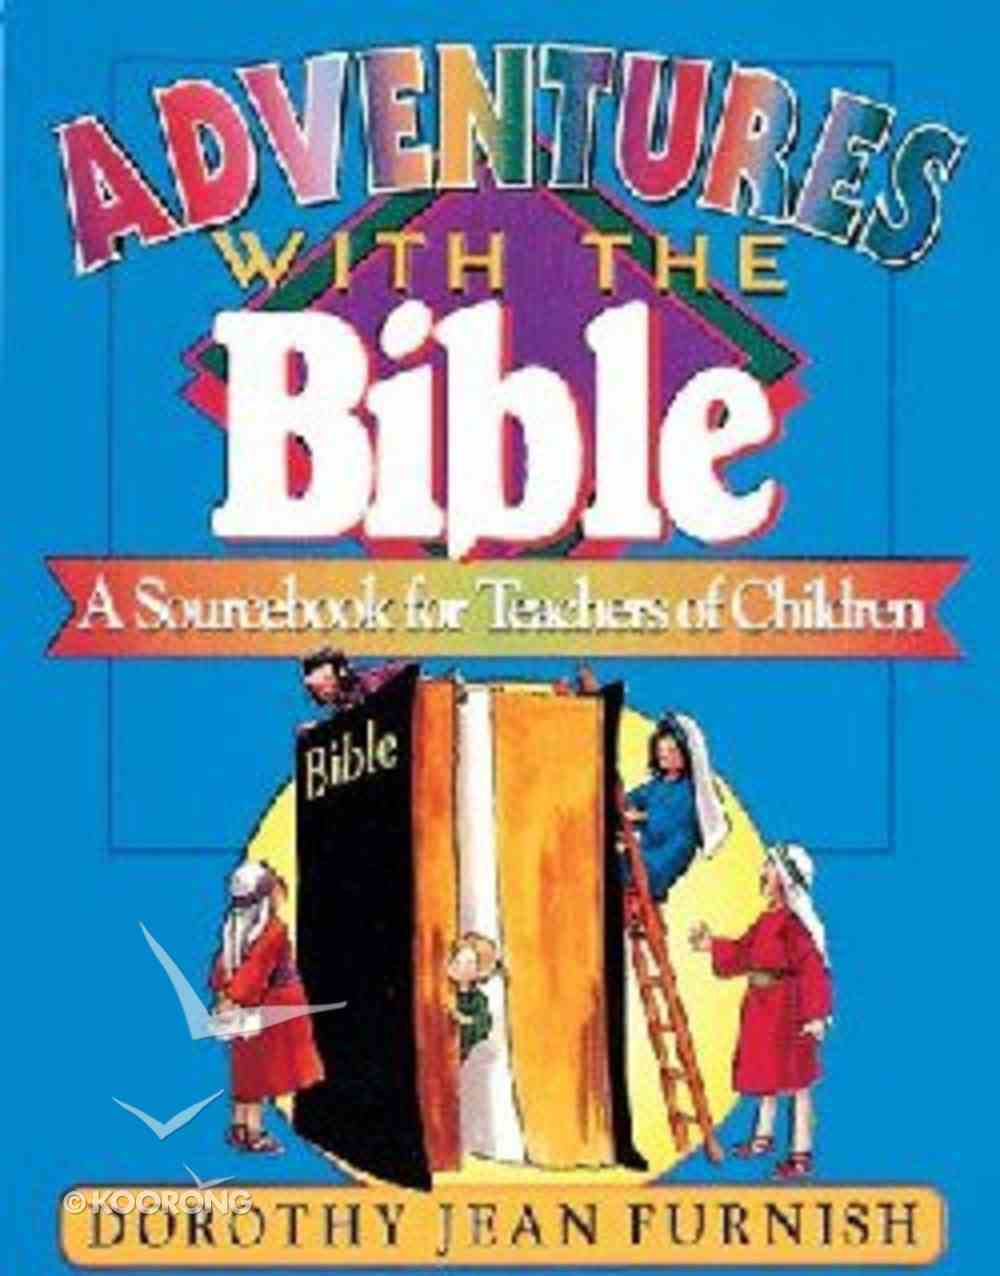 Adventures With the Bible Paperback